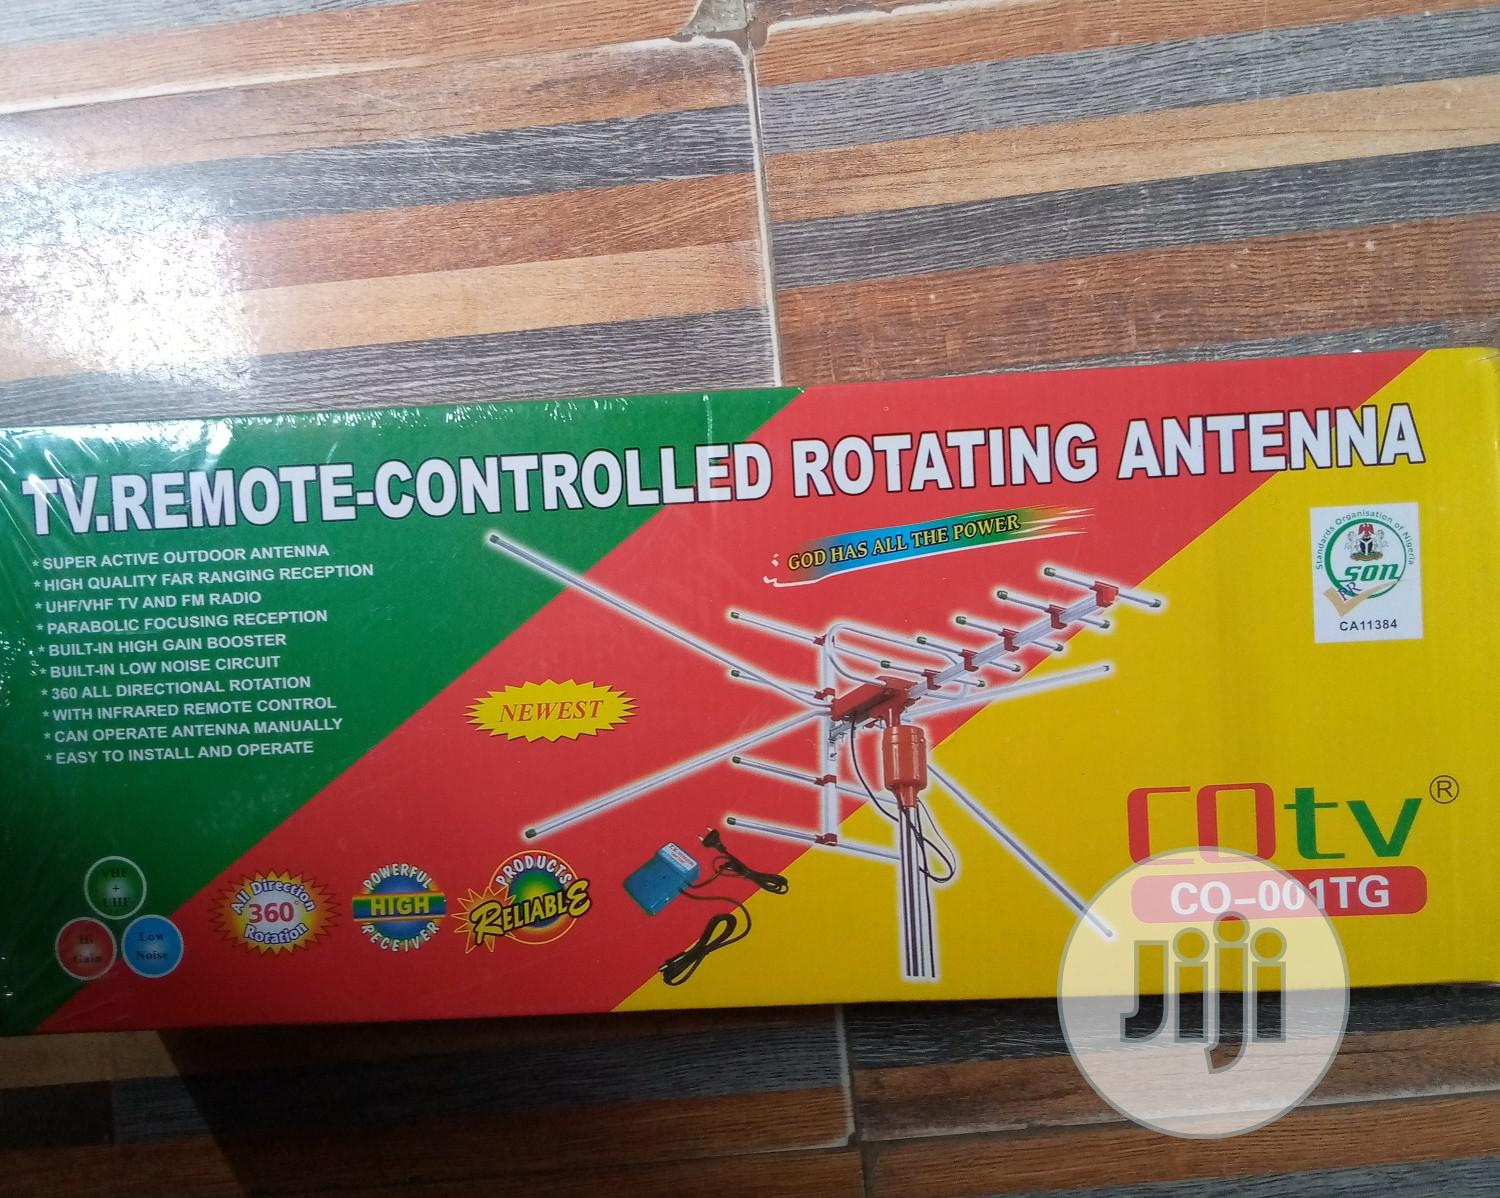 Archive: Antenna Cotv With Remote Control Best With In Gotv And Dstv